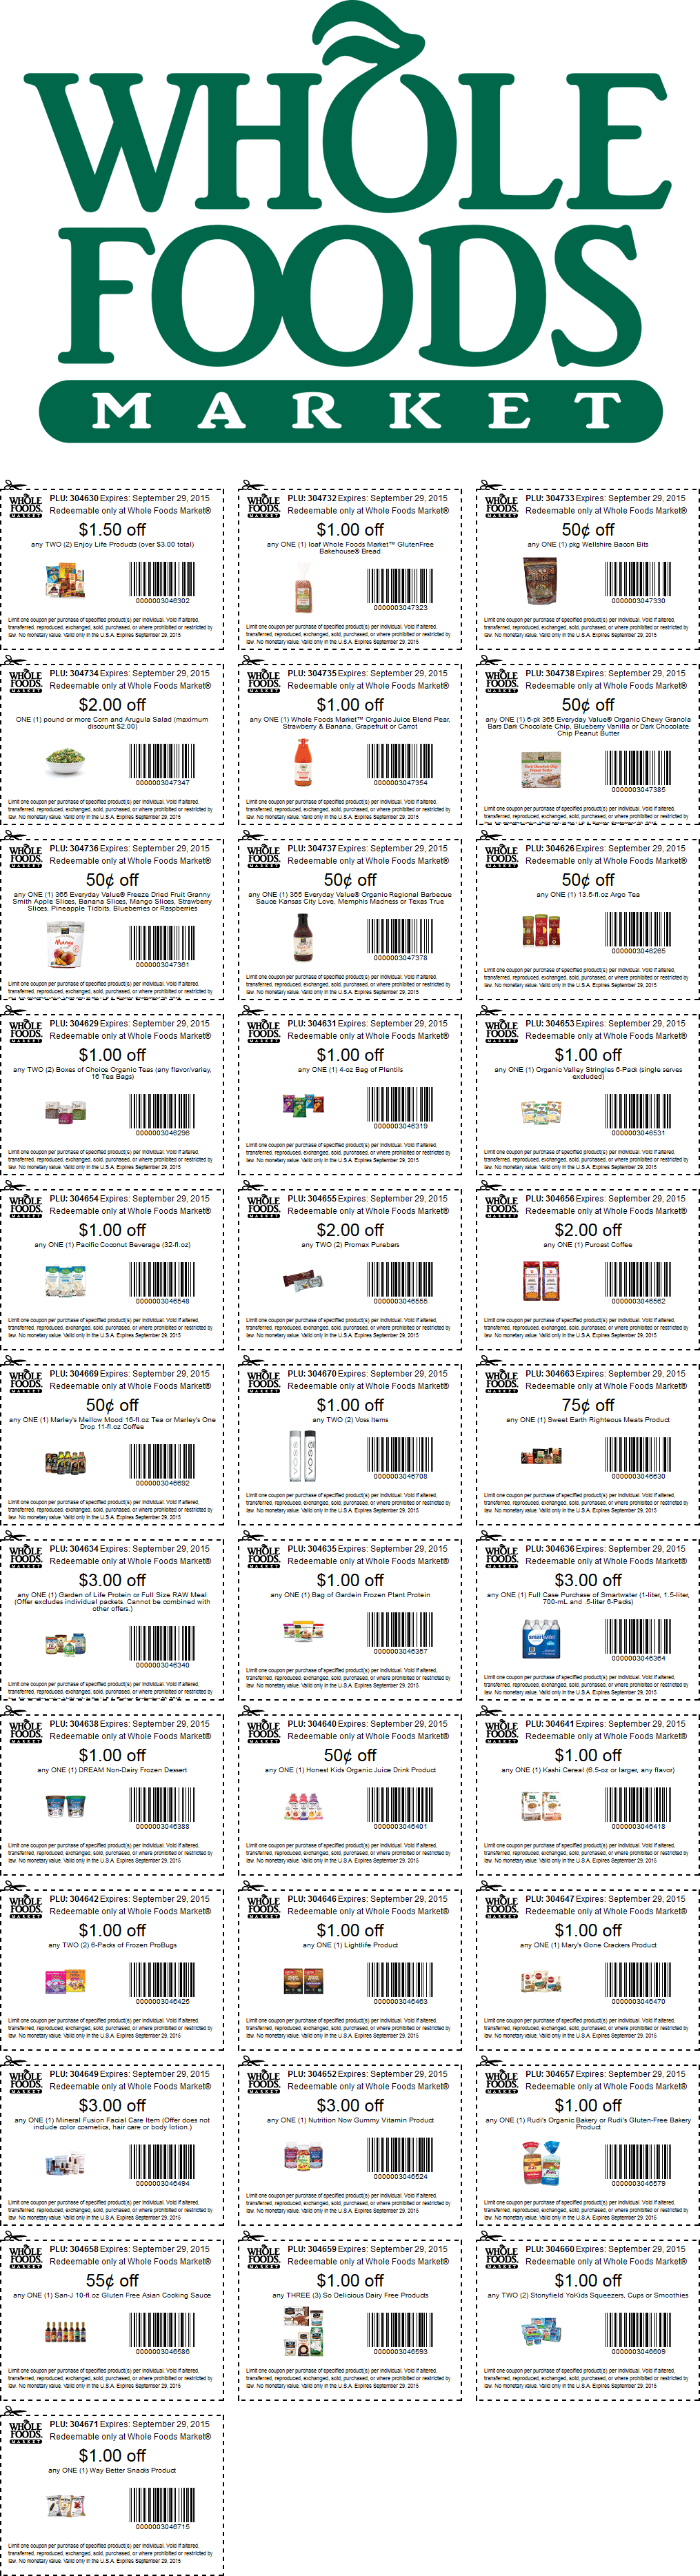 Whole Foods Coupon December 2018 Various grocery coupons for Whole Foods market